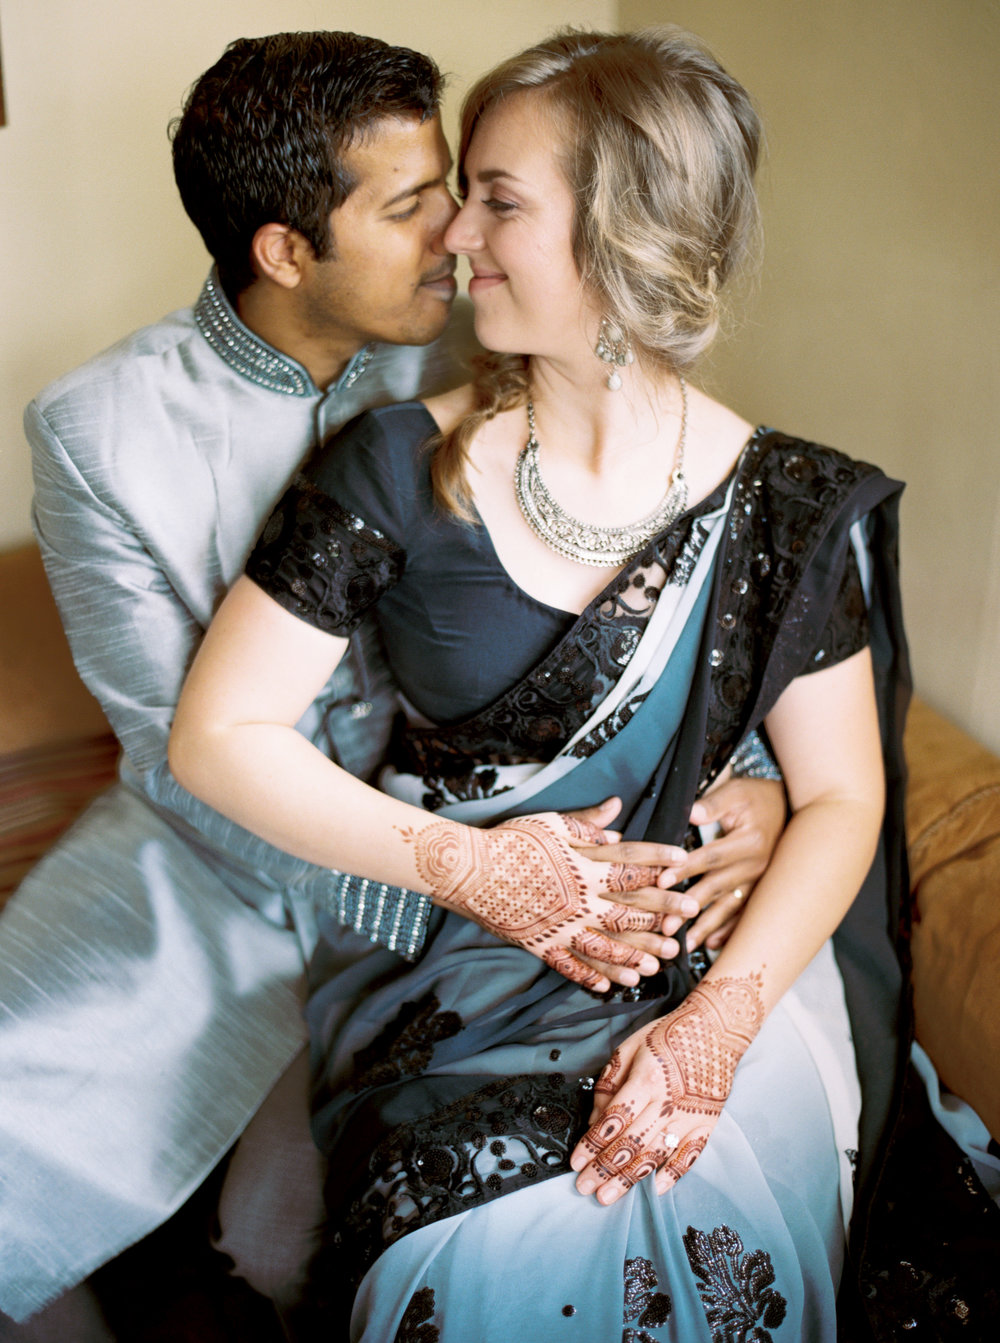 Wahoo_Grill_Atlanta_Indian_Wedding_Abigail_Malone_Photgoraphy_FIlm-47.jpg